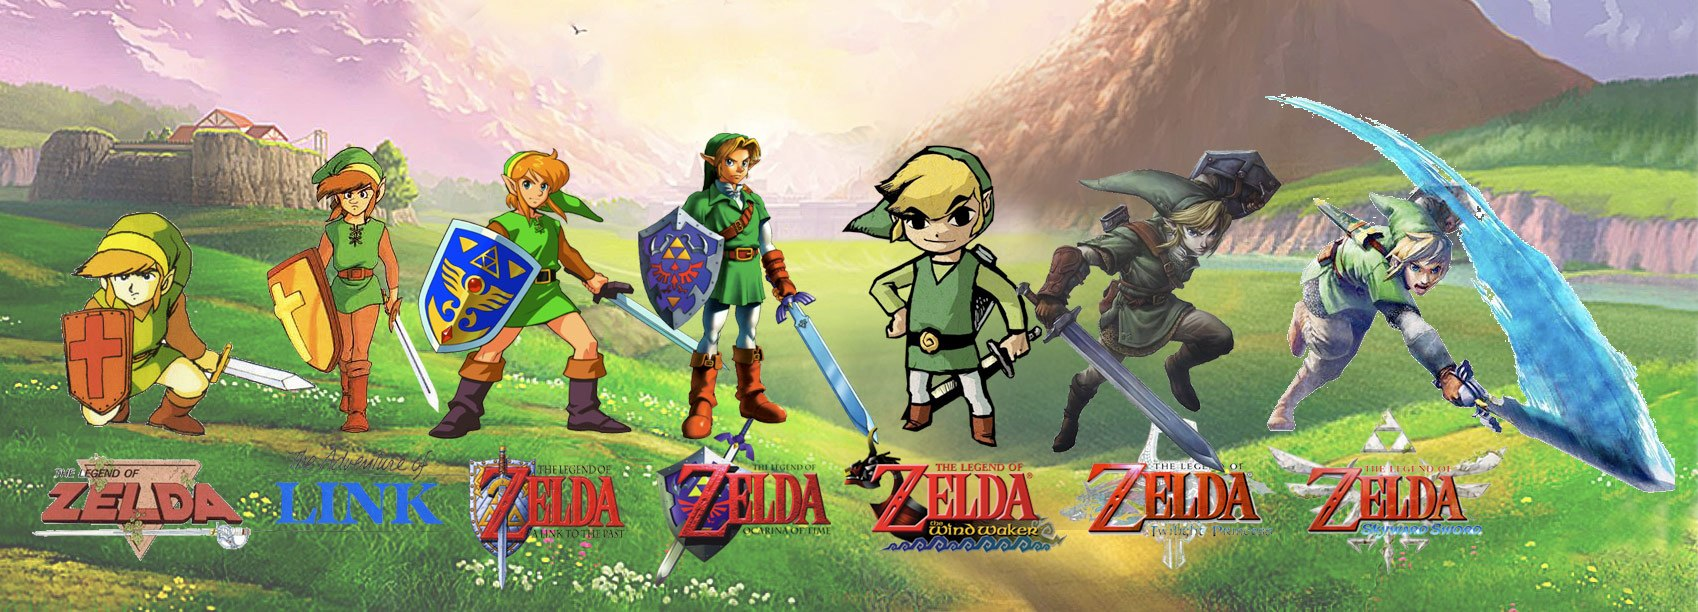 check out our list of zelda games!